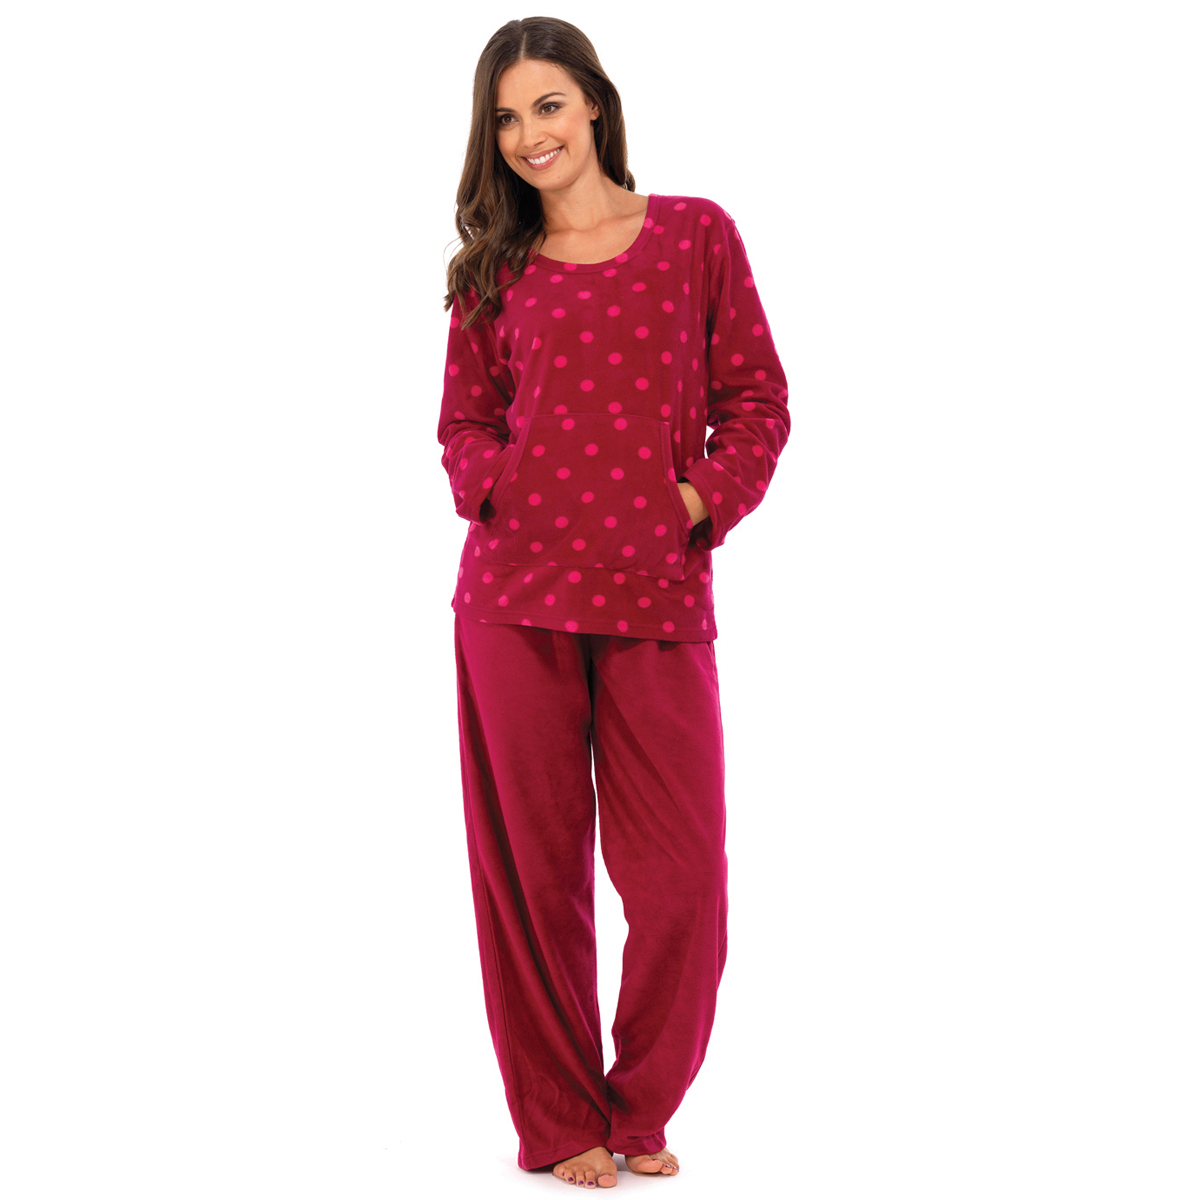 34bb31b0b54 Ladies Womens Long Sleeve Polka Dot Fleece PJ Pyjamas Sets Winter